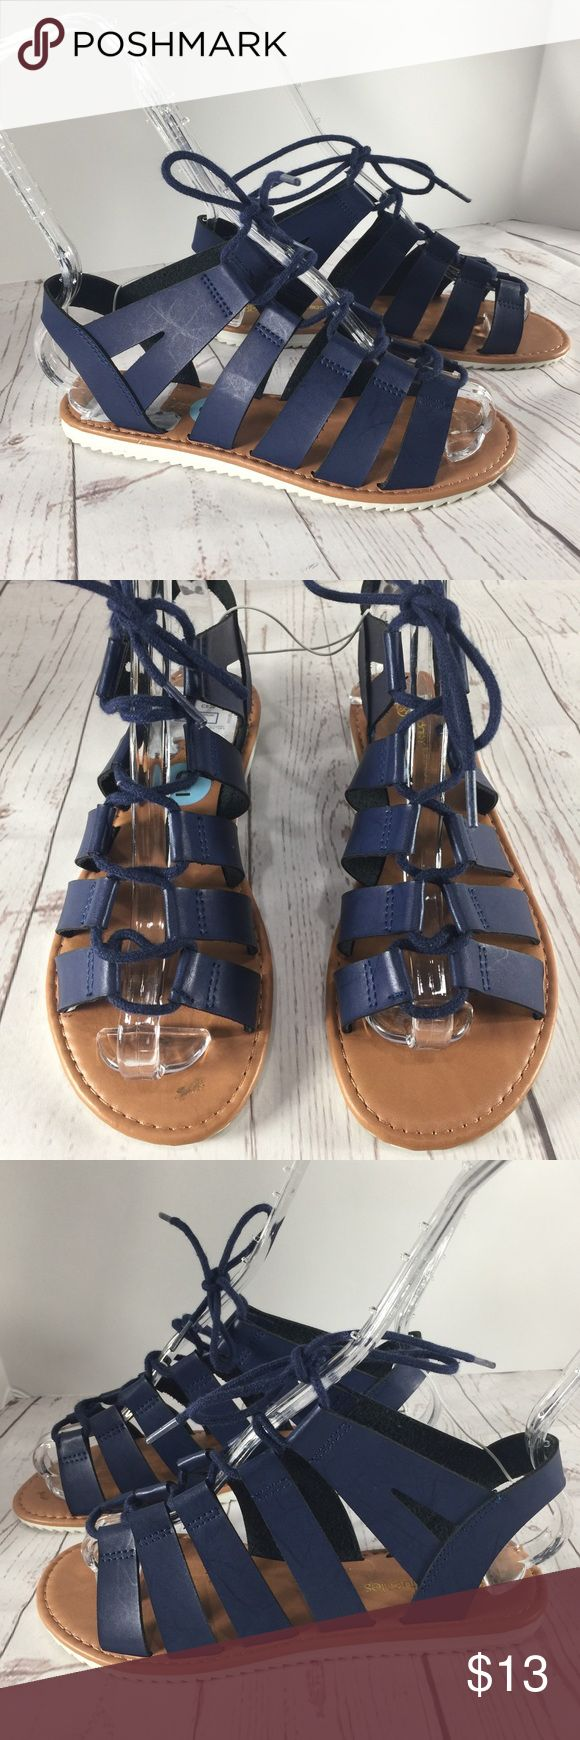 Daisy Fuentes Blue Strappy Sandals Daisy Fuentes Strappy Sandals perfect for Spring and Summer, notice that they have some scuffs and marks; they were just sitting in a closet. Brand New!! Daisy Fuentes Shoes Sandals